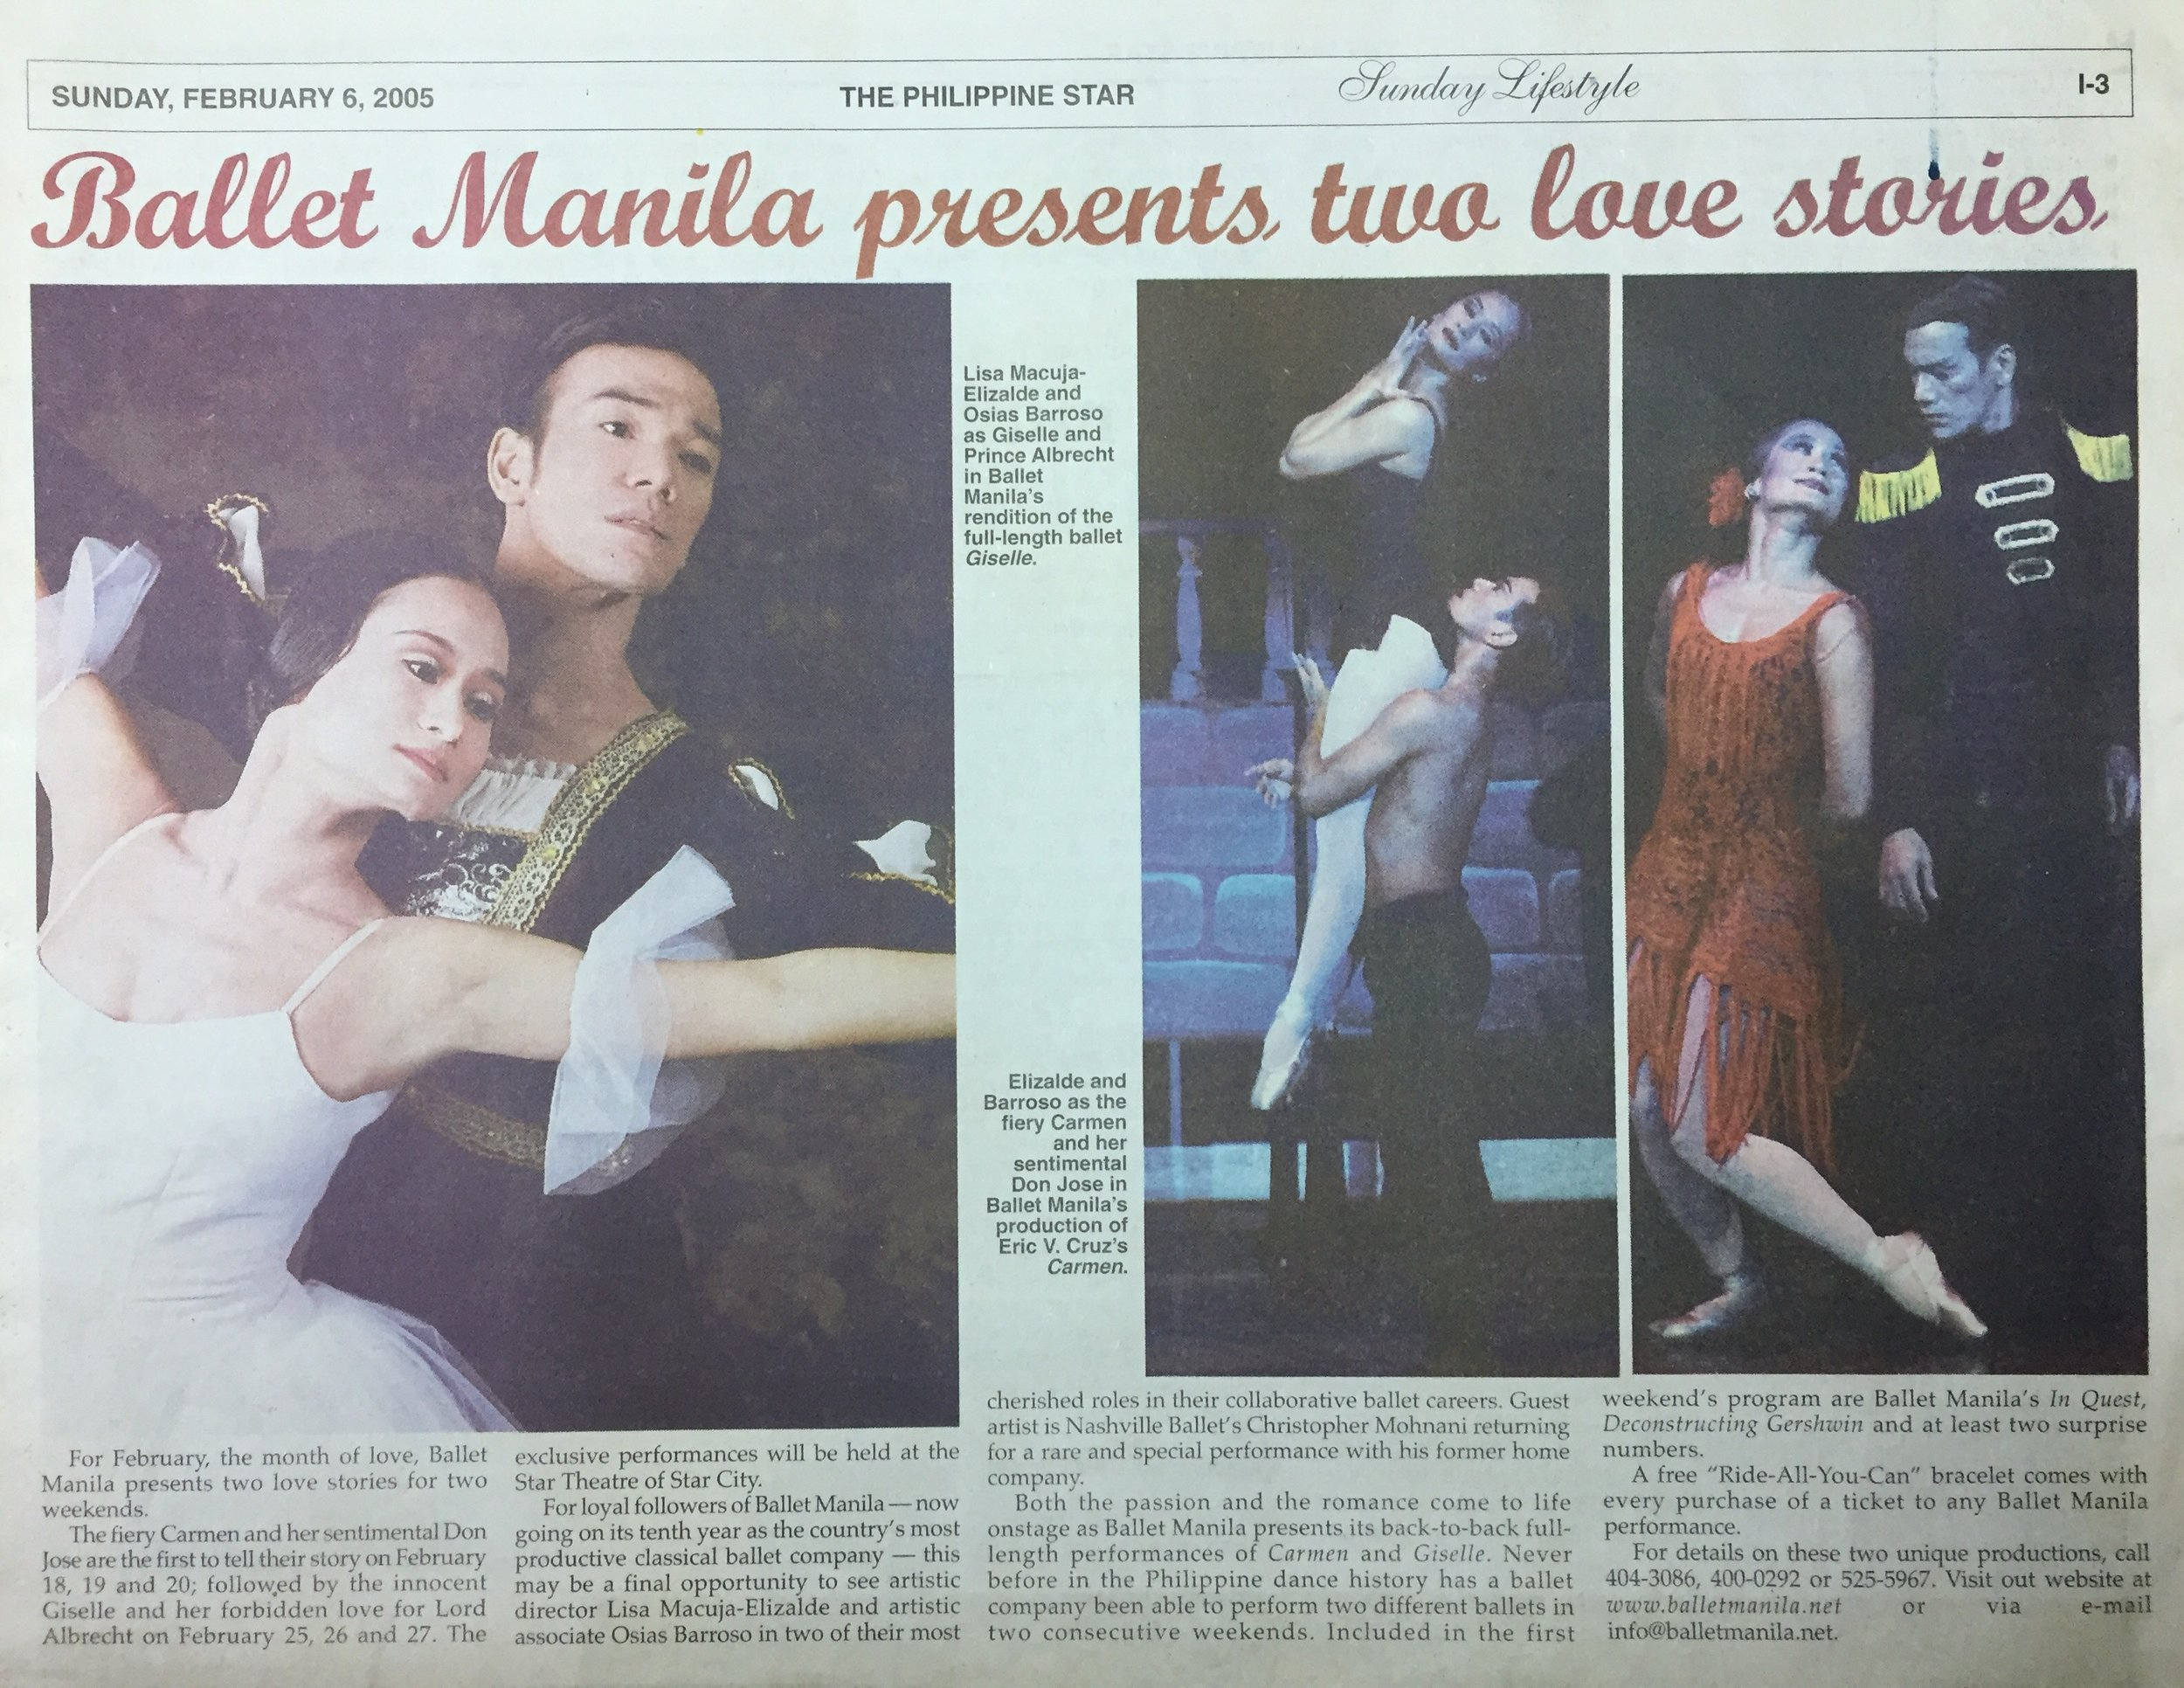 A news item shares the iconic ballet classics that BM principal dancers Lisa Macuja-Elizalde and Osias Barroso were bringing to life. From the Ballet Manila Archives collection